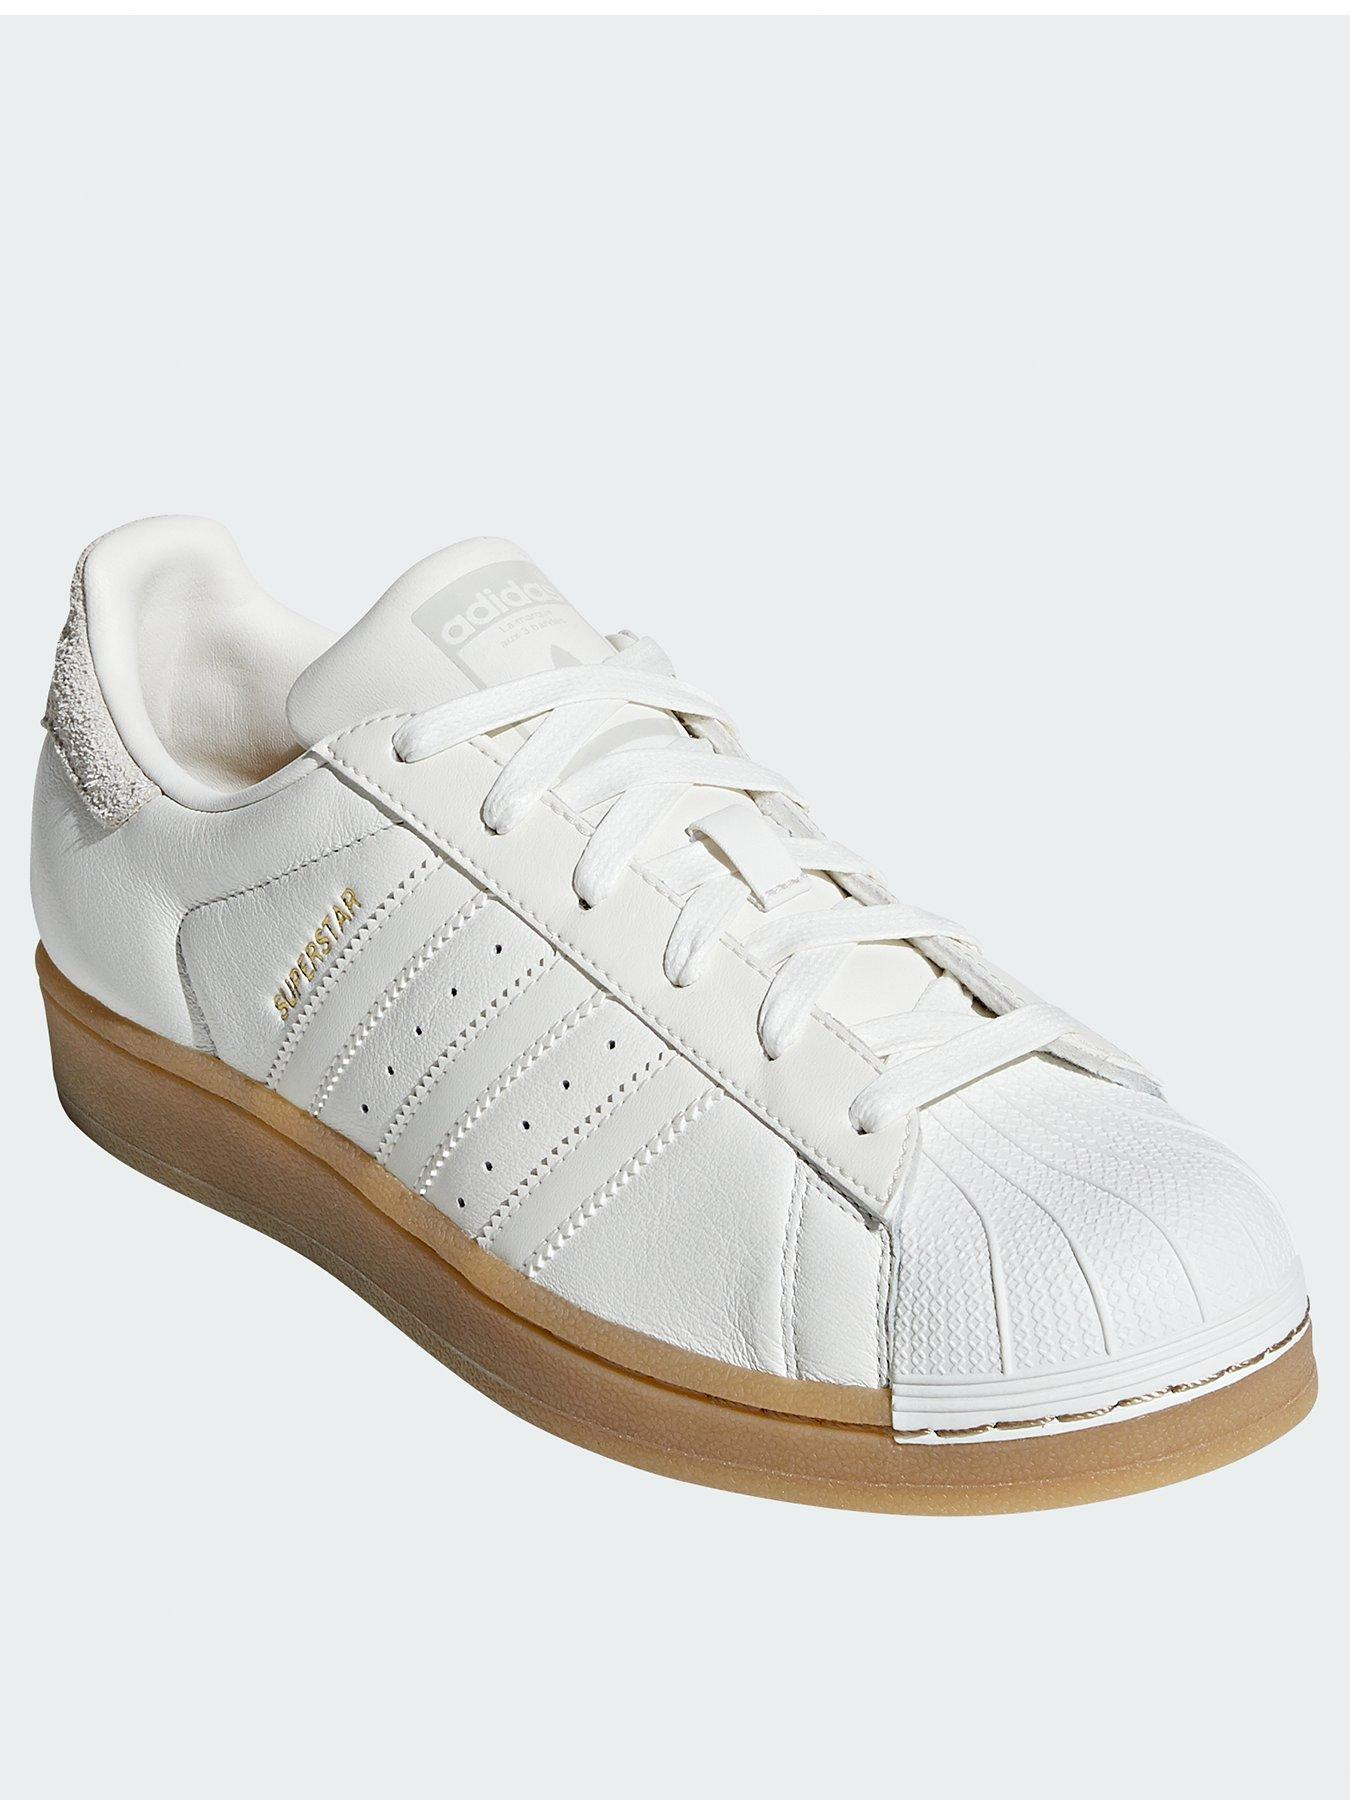 canada adidas superstar uniform blu af37a 9c730